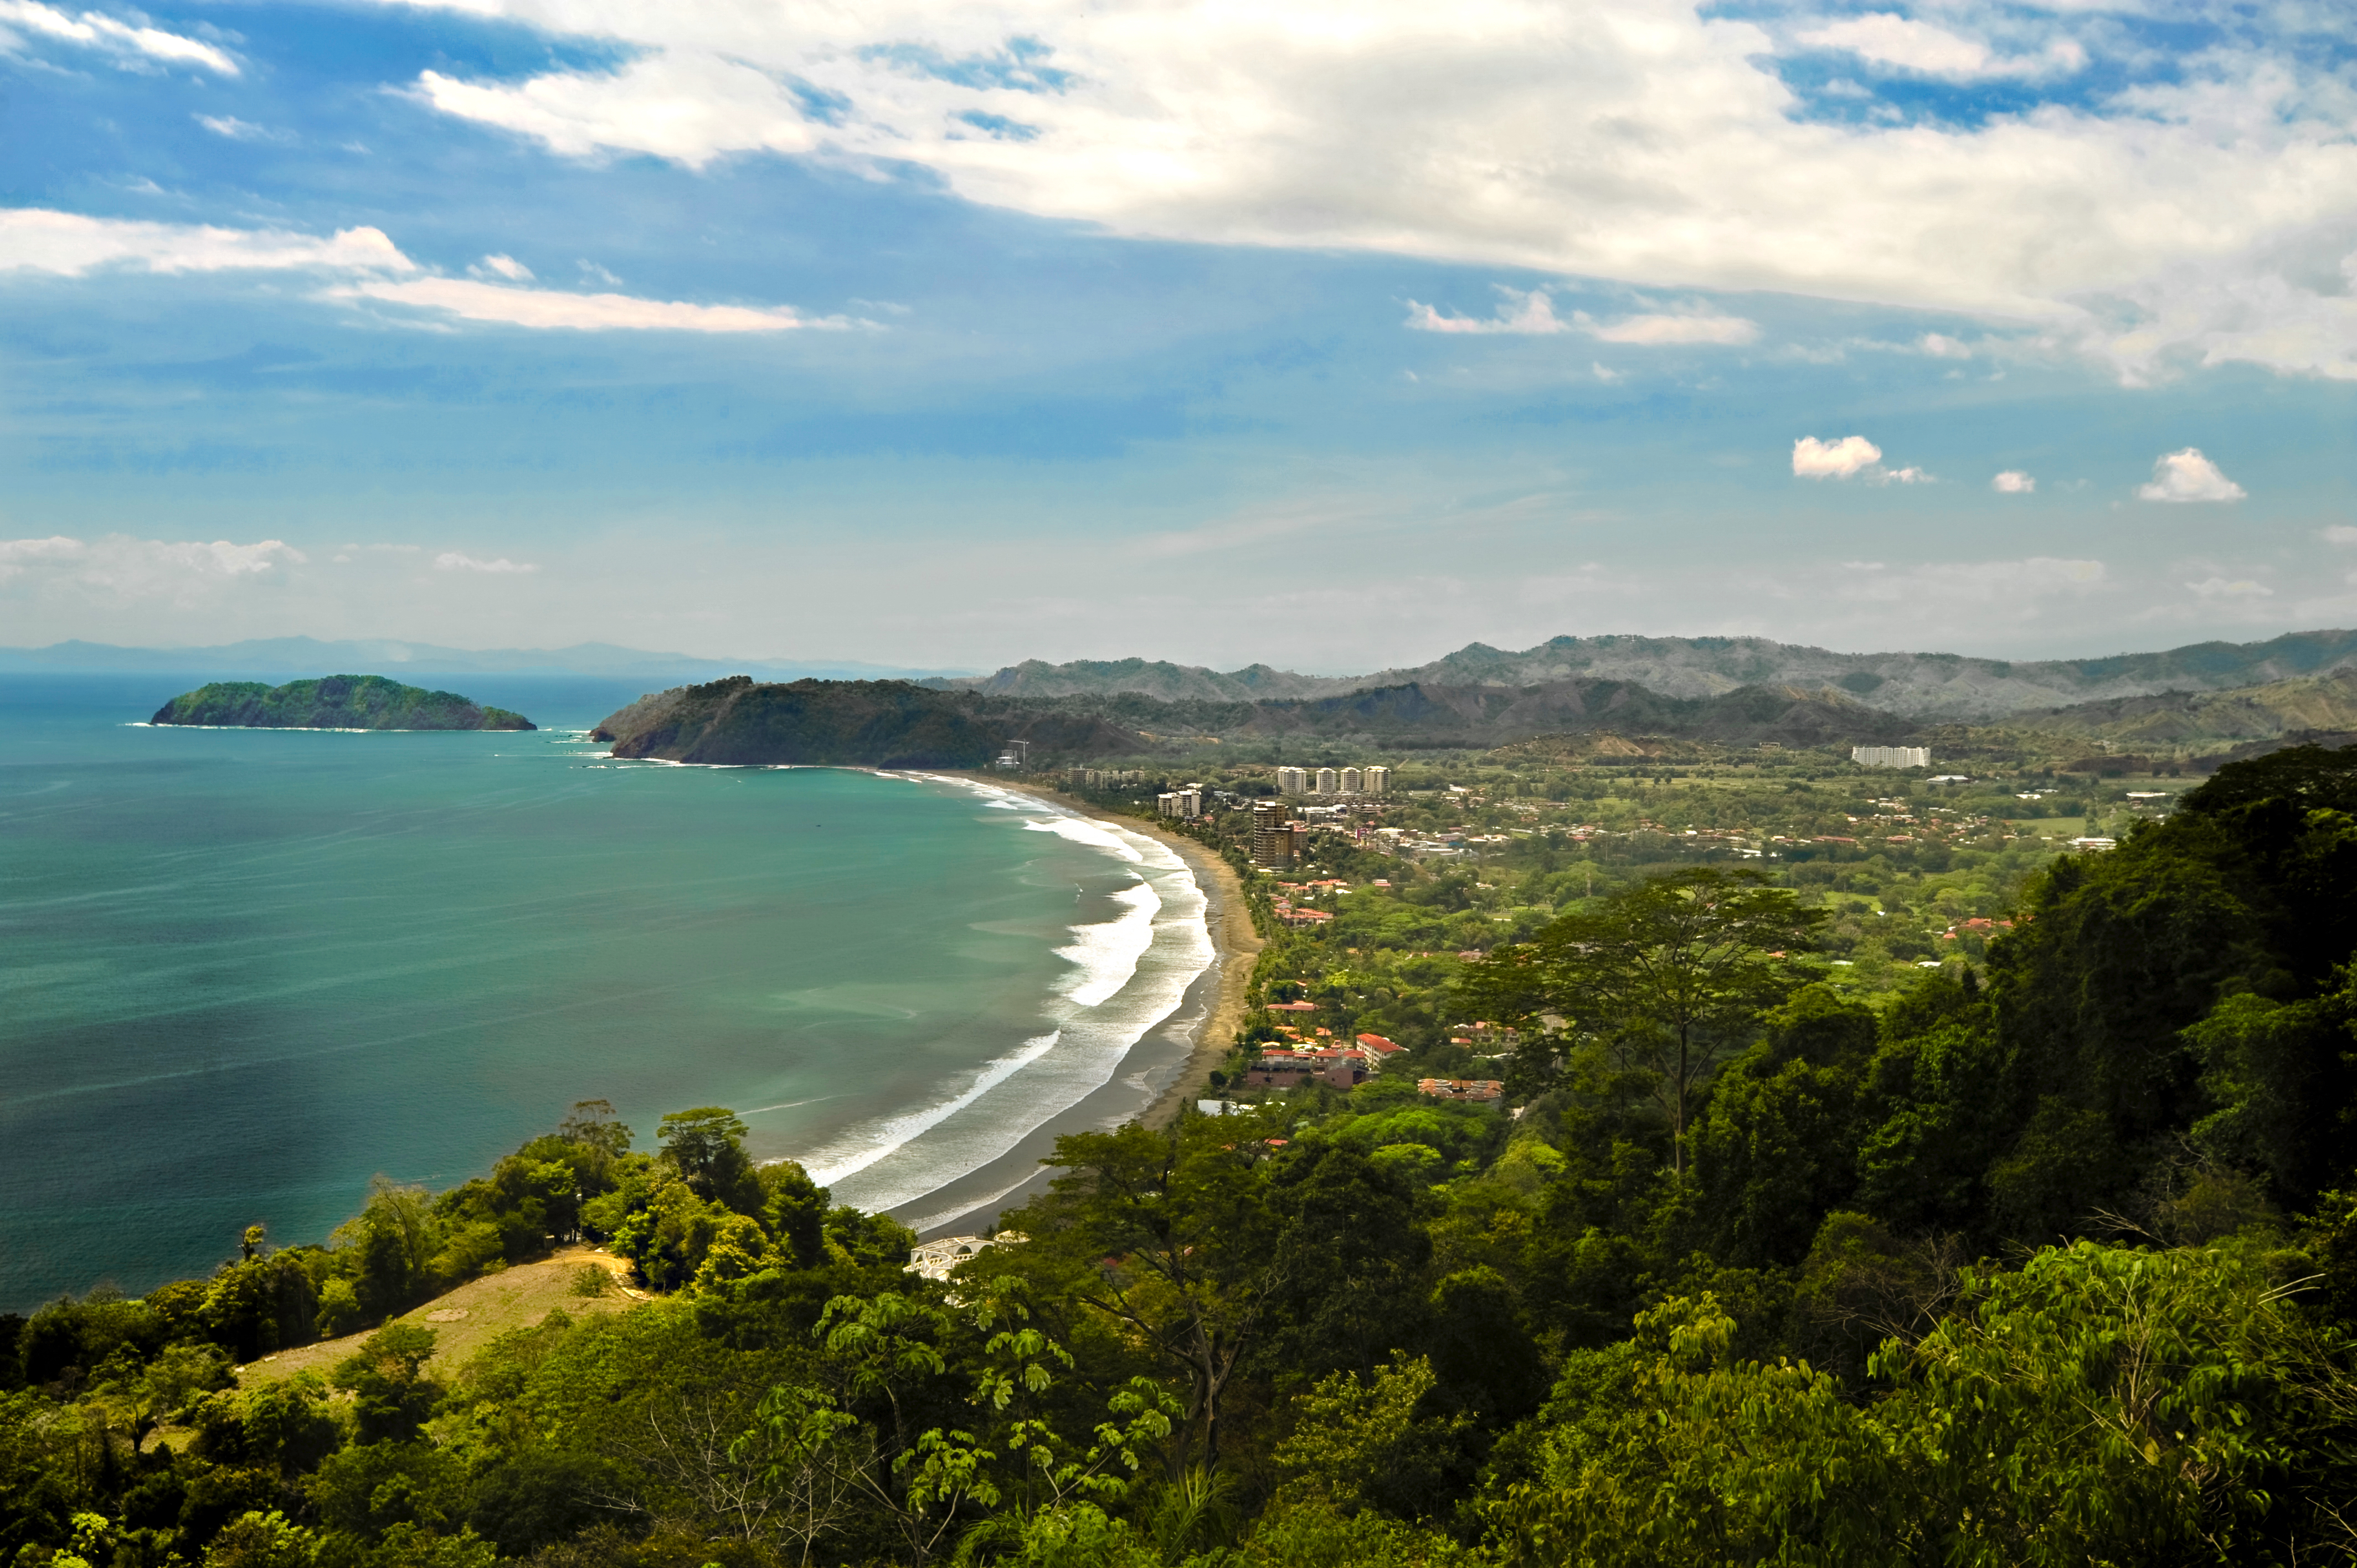 Exterior Jaco Beach Surrounded By Lush Rainforest From Above